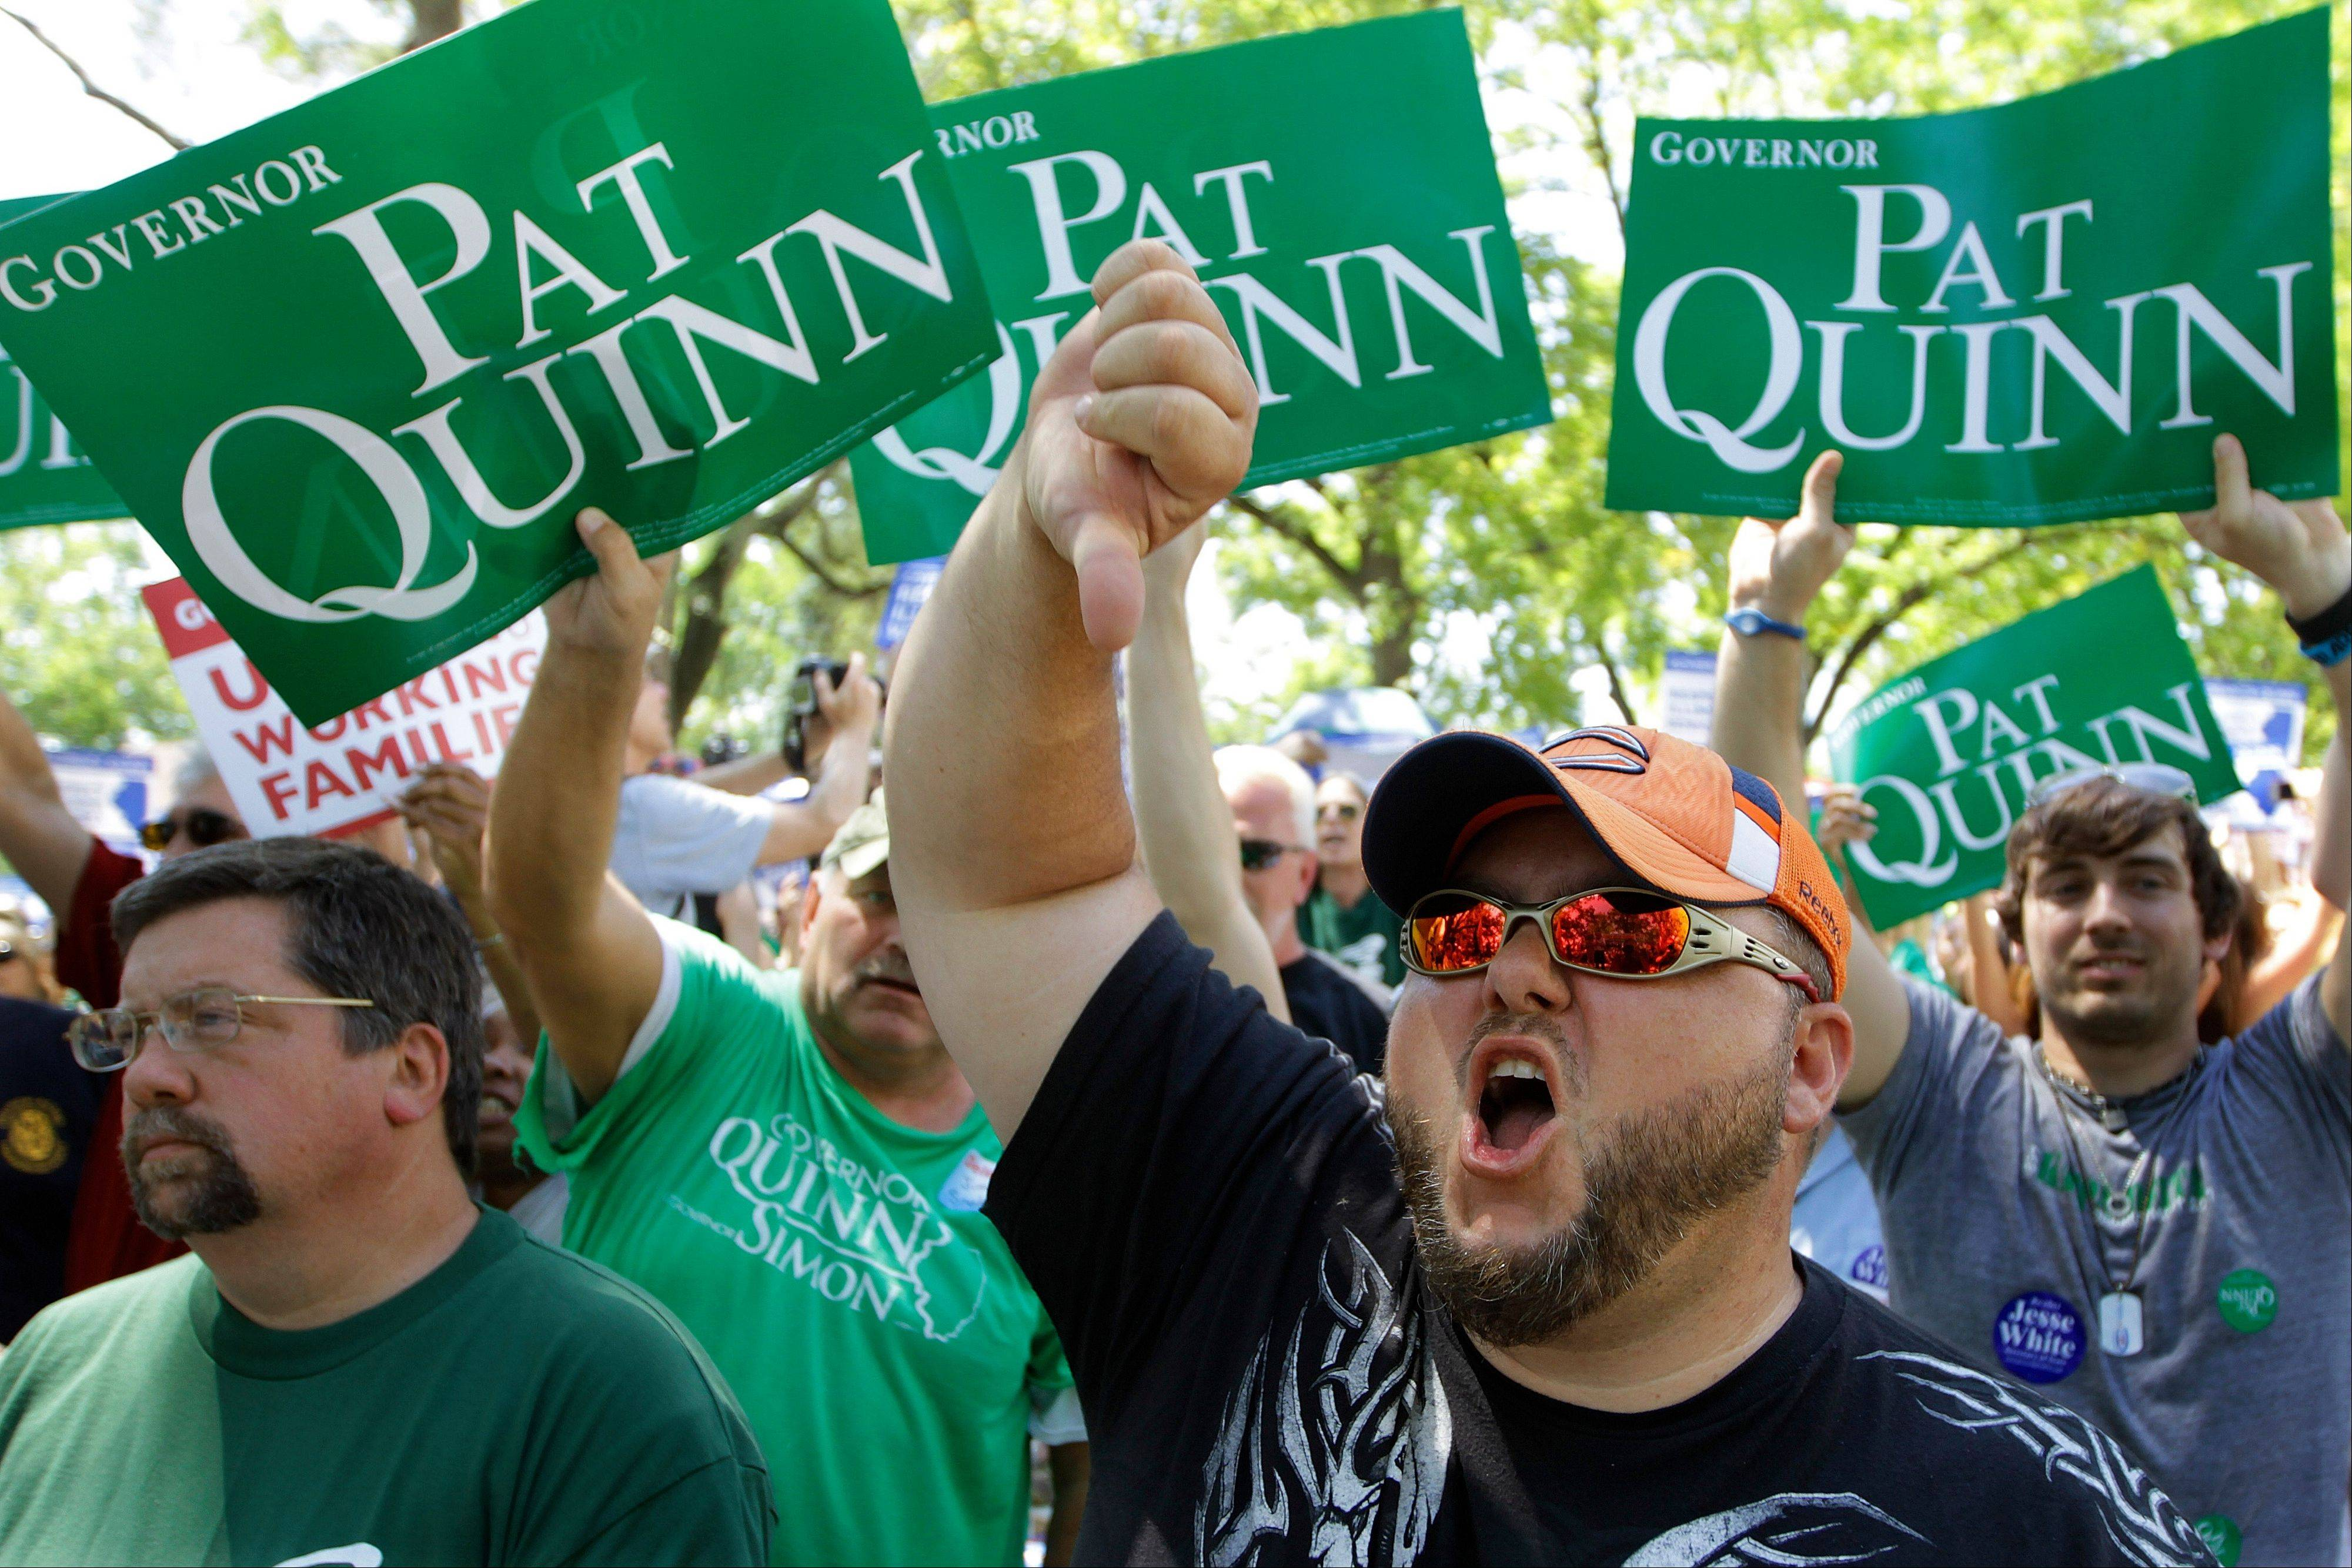 Mike Phillips, and other union protesters, supporters, and labor leaders boo Illinois Gov. Pat Quinn in protest, saying he is betraying the Democratic Party's tradition of supporting working men and women, during Governor's Day at the Illinois State Fair in Springfield.